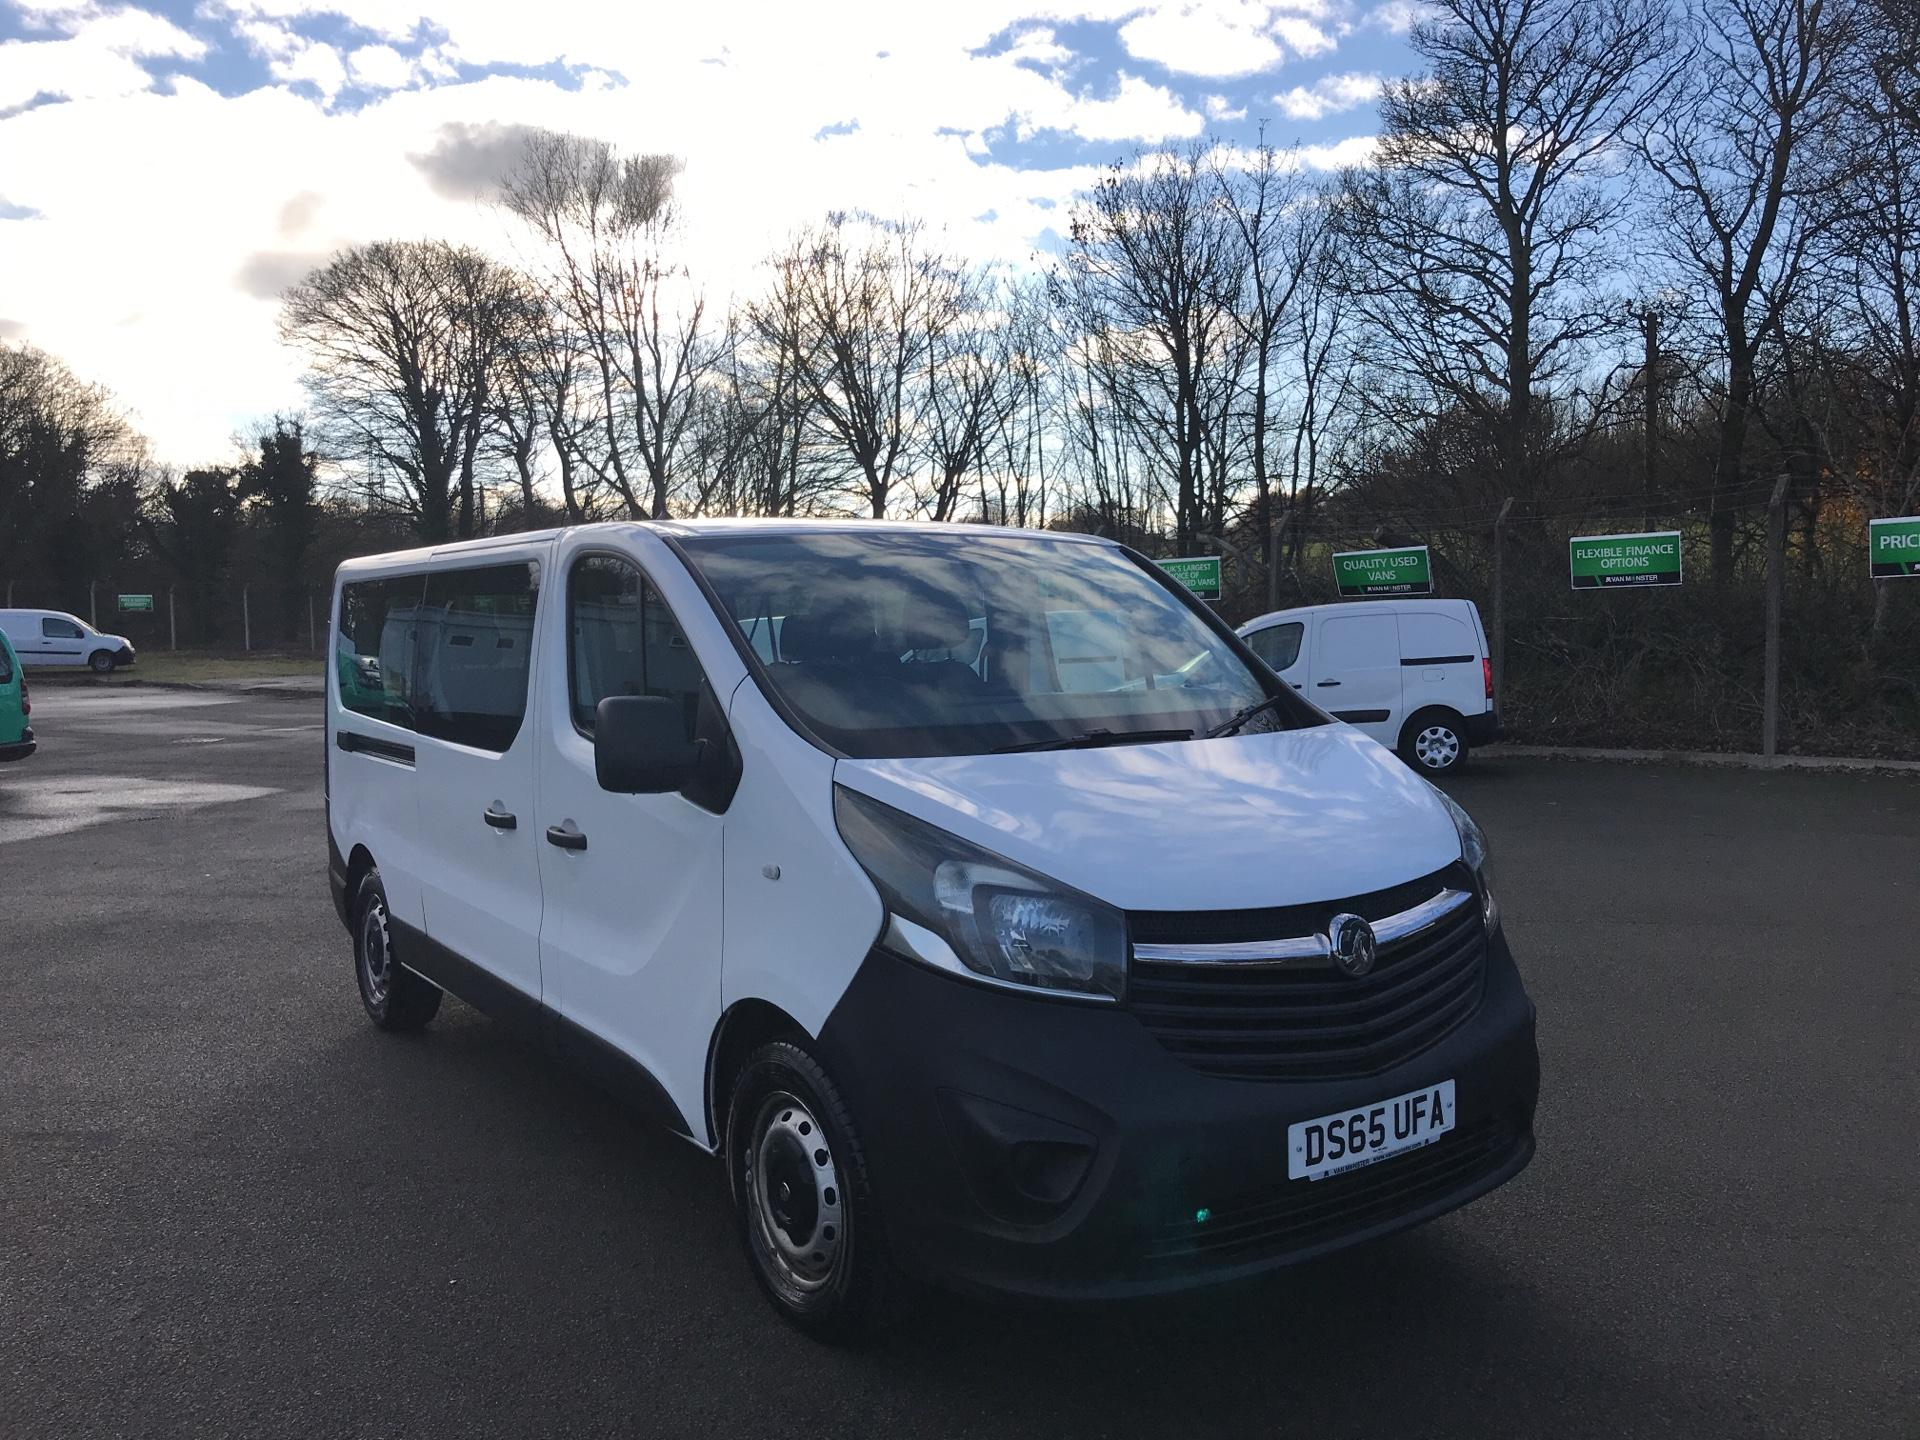 2015 Vauxhall Vivaro  L2 H1 2900 1.6 115PS COMBI 9 SEAT EURO 5 *VALUE RANGE VEHICLE - CONDITION REFLECTED IN PRICE* (DS65UFA)